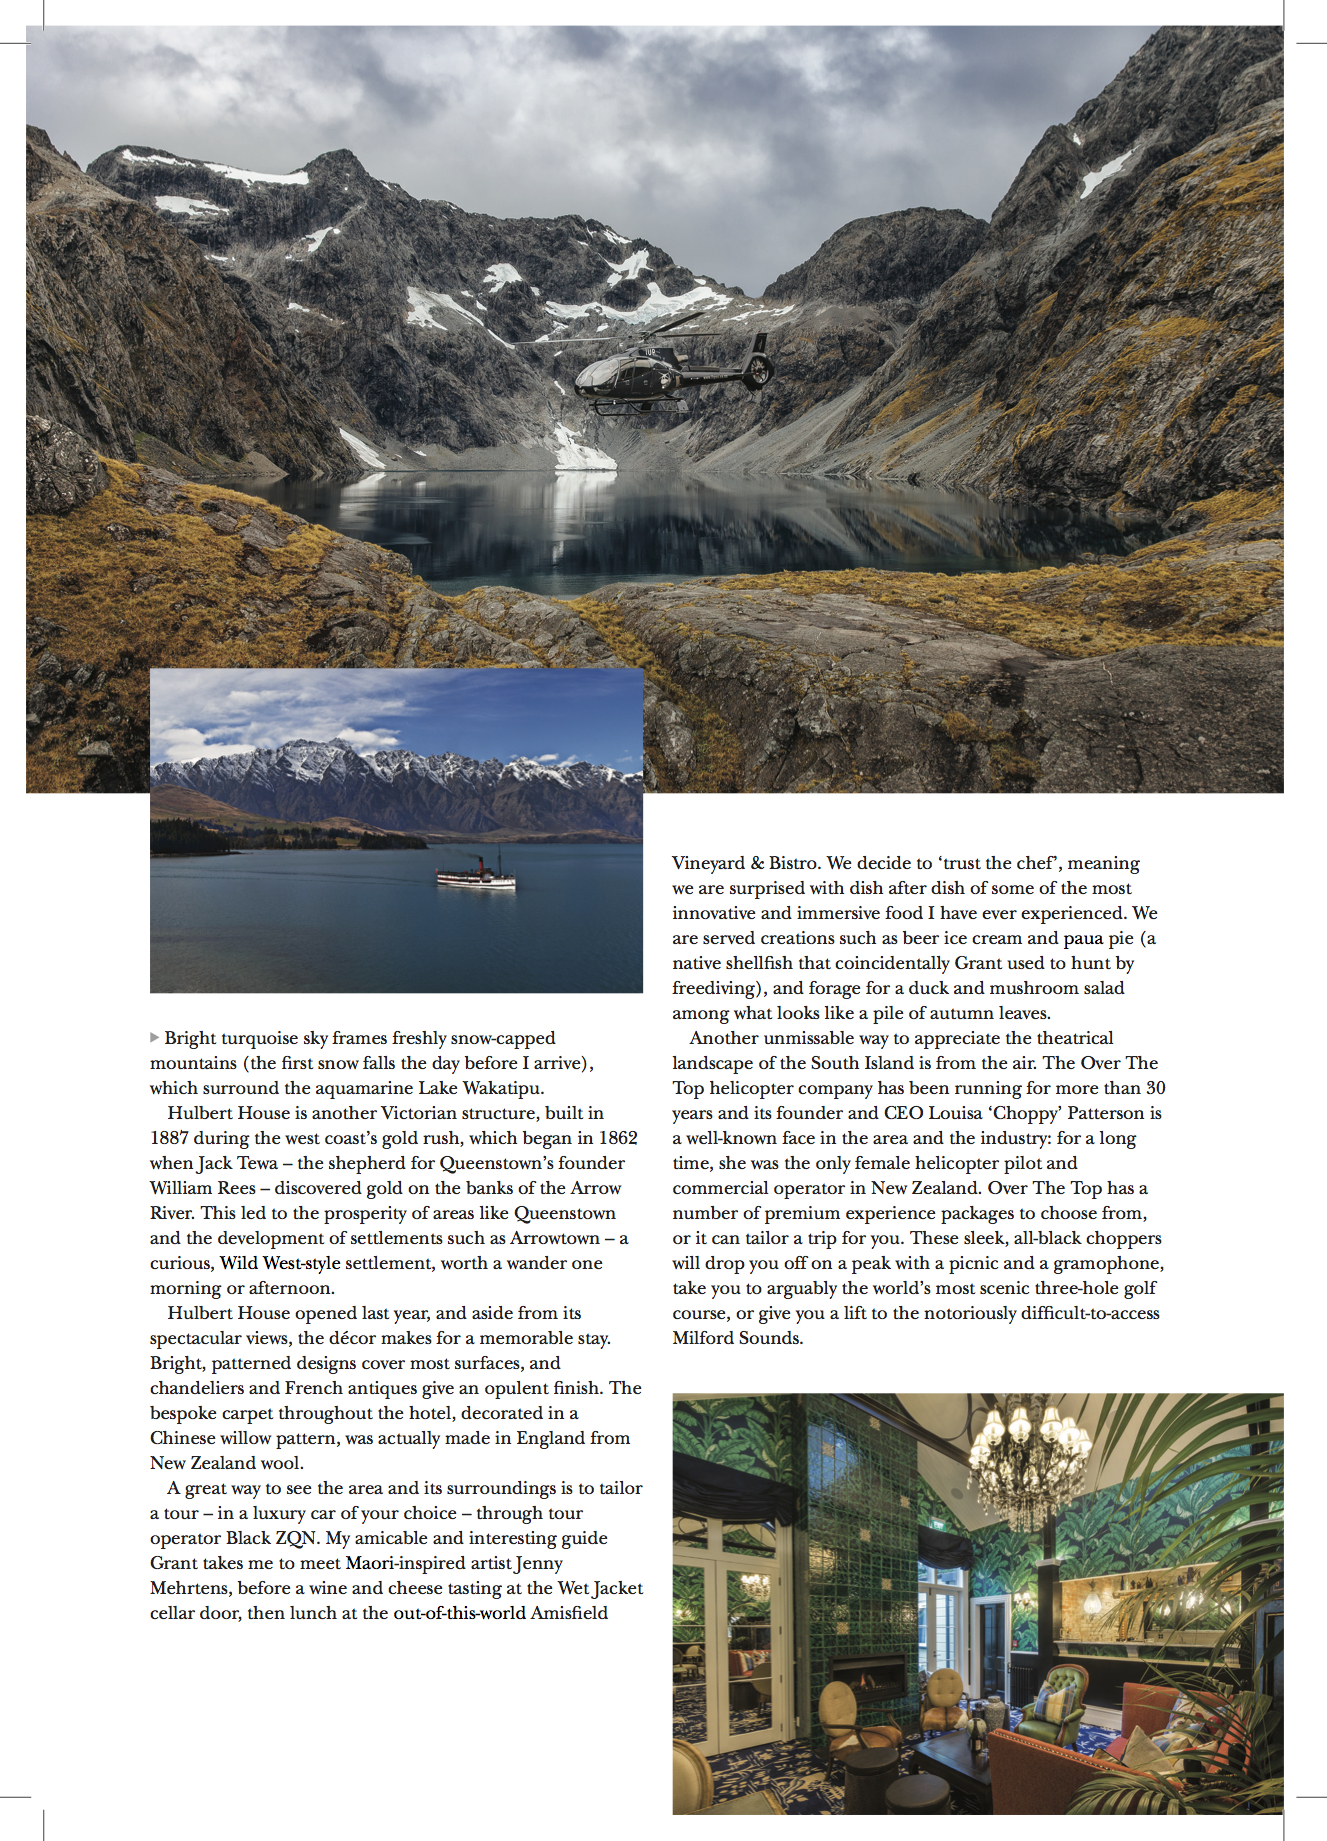 094 MAYF AUG 17 - TRAVEL - FEATURE - NEW ZEALAND.jpg